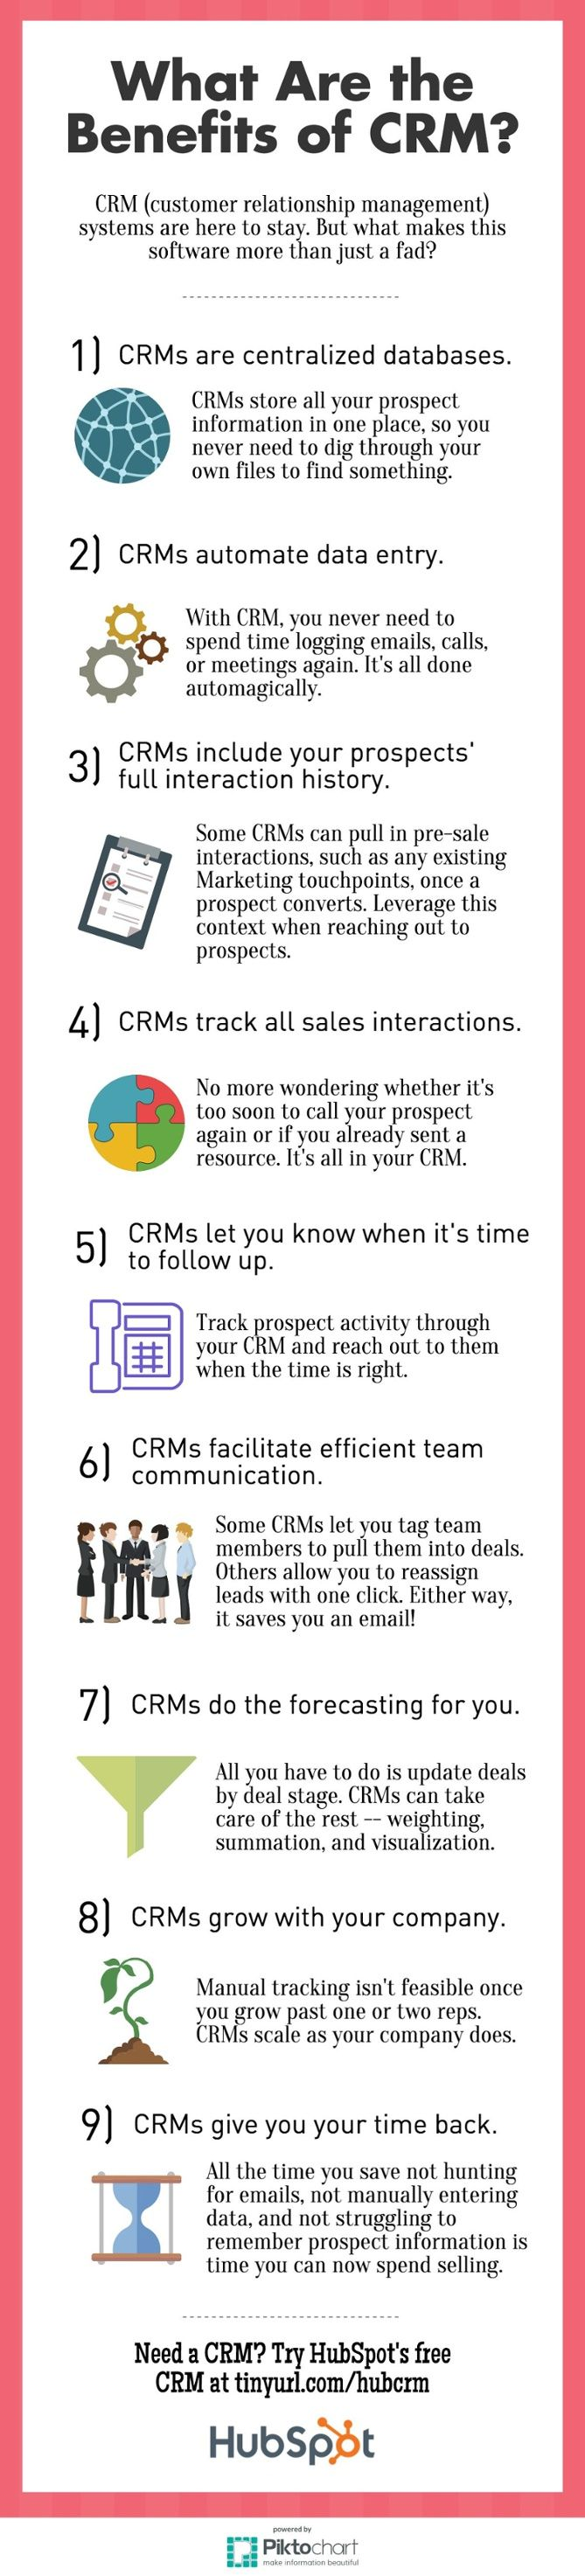 9 Benefits of #CRM Software #Infographic via @HubSpot